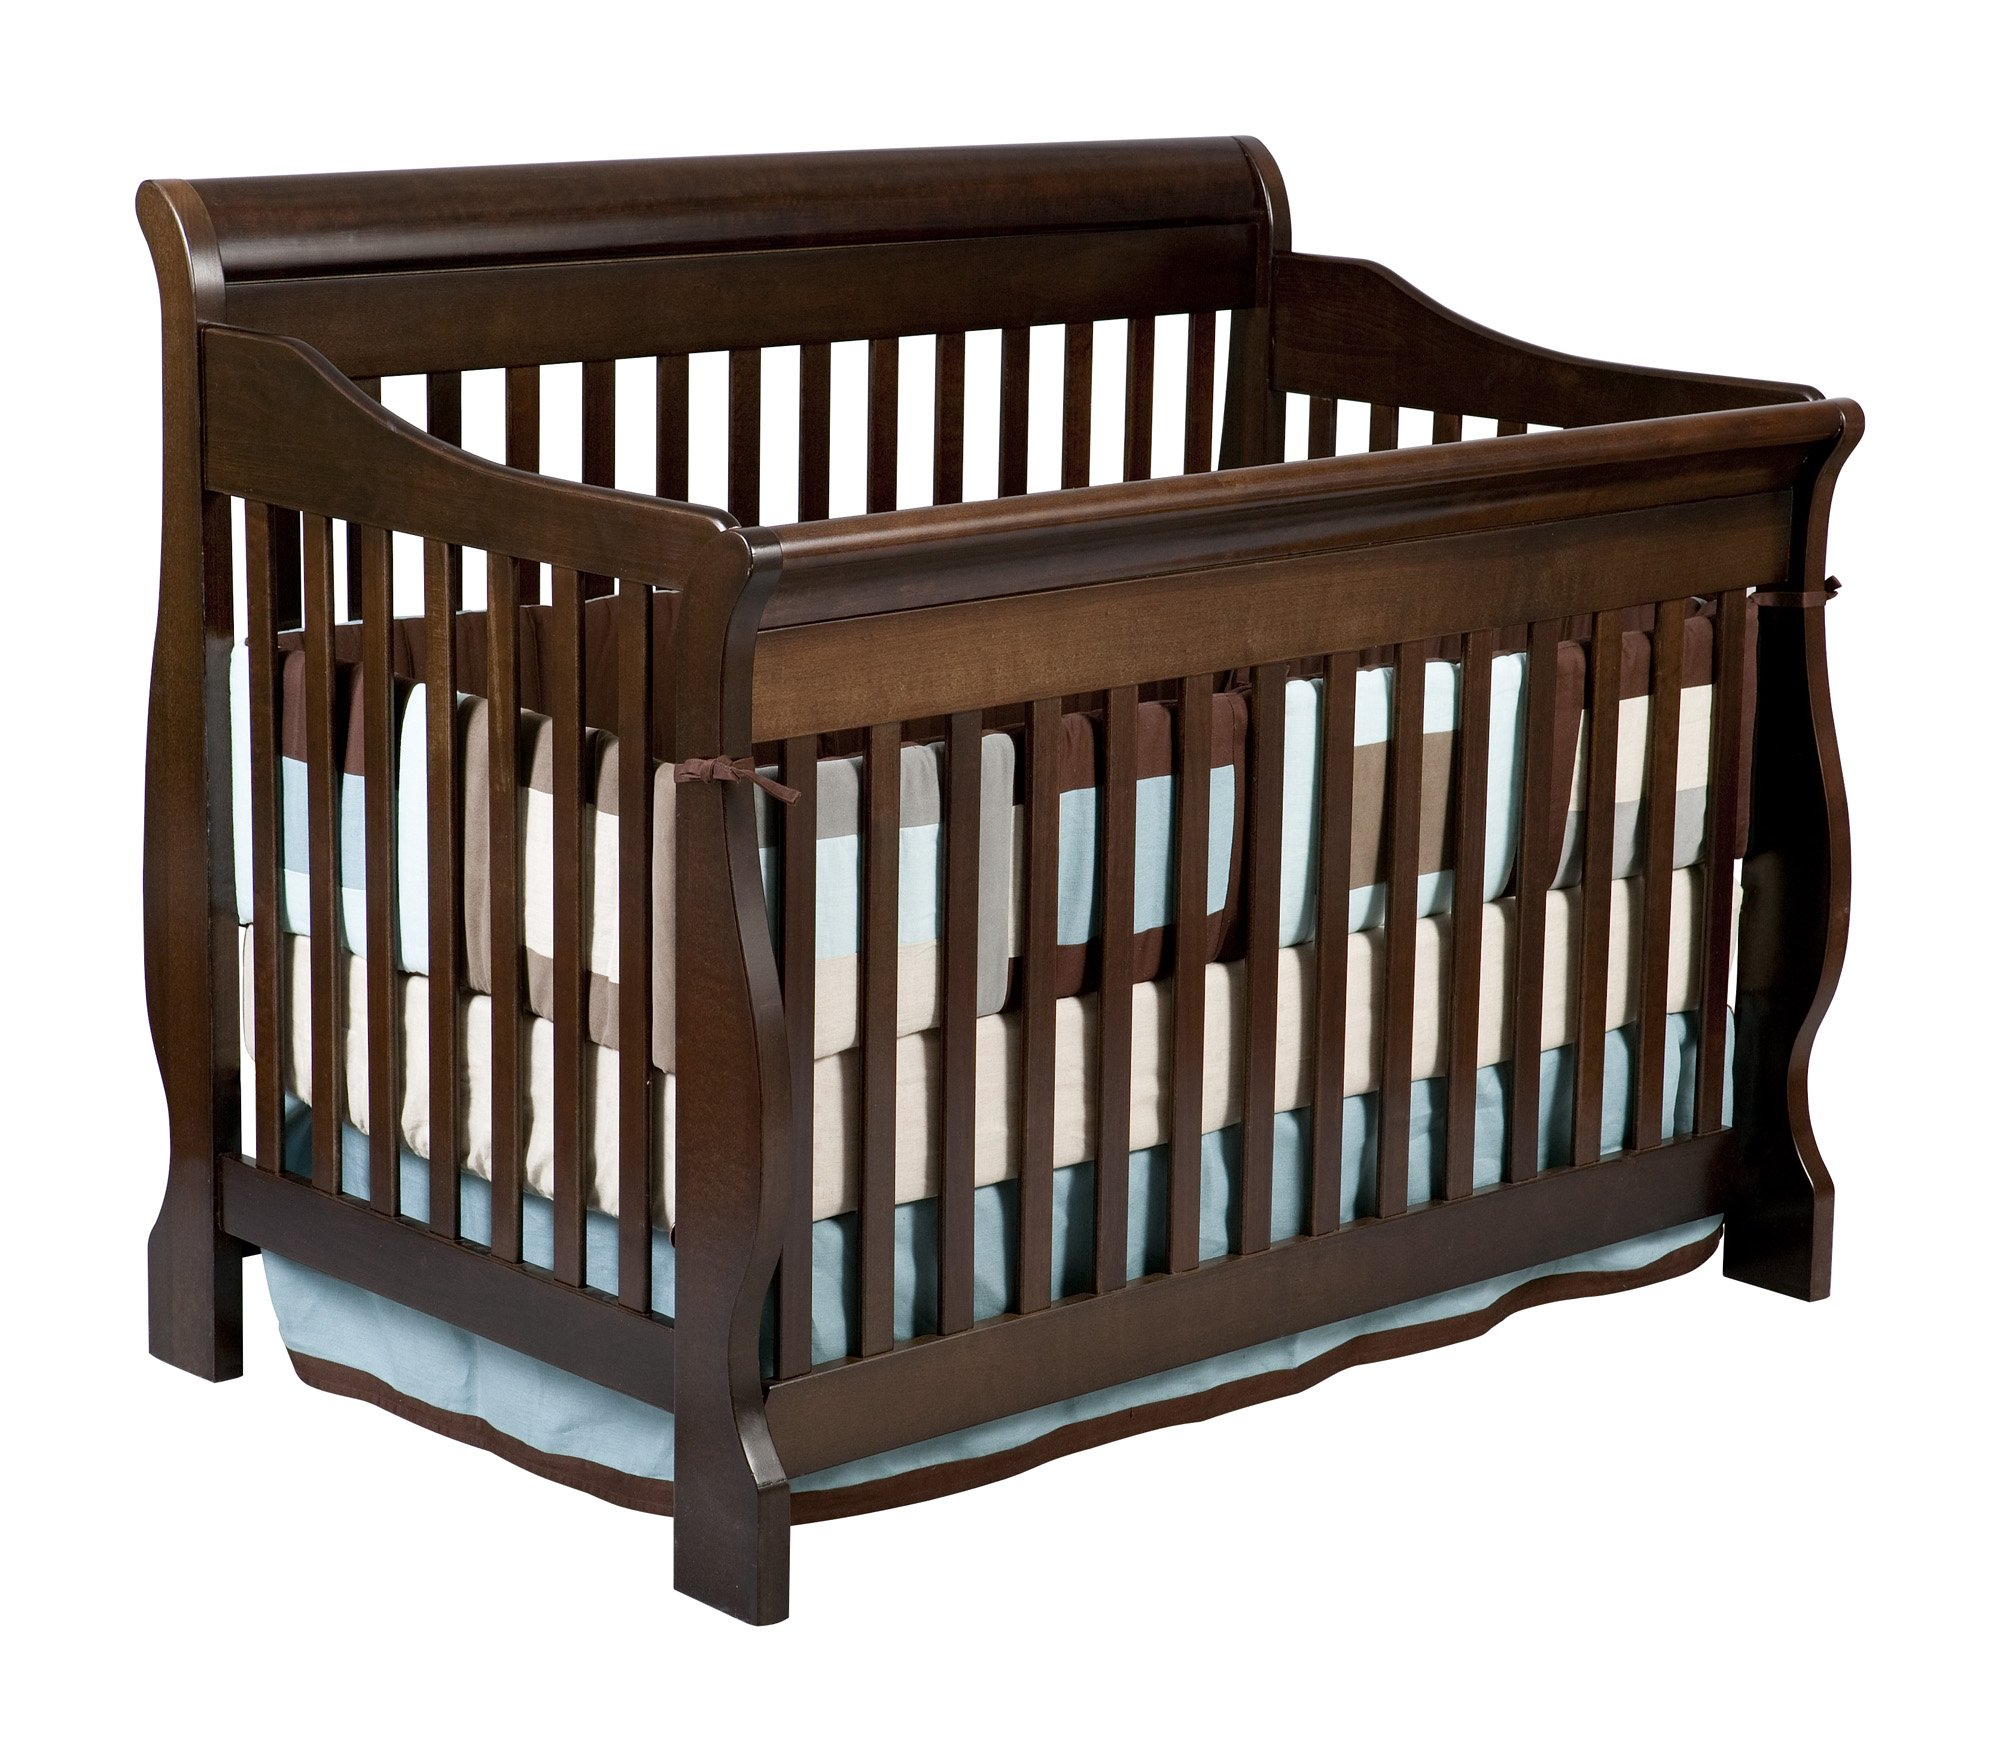 Delta Children Canton 4-in-1 Convertible Crib, Espresso Cherry by Delta Children (Image #2)